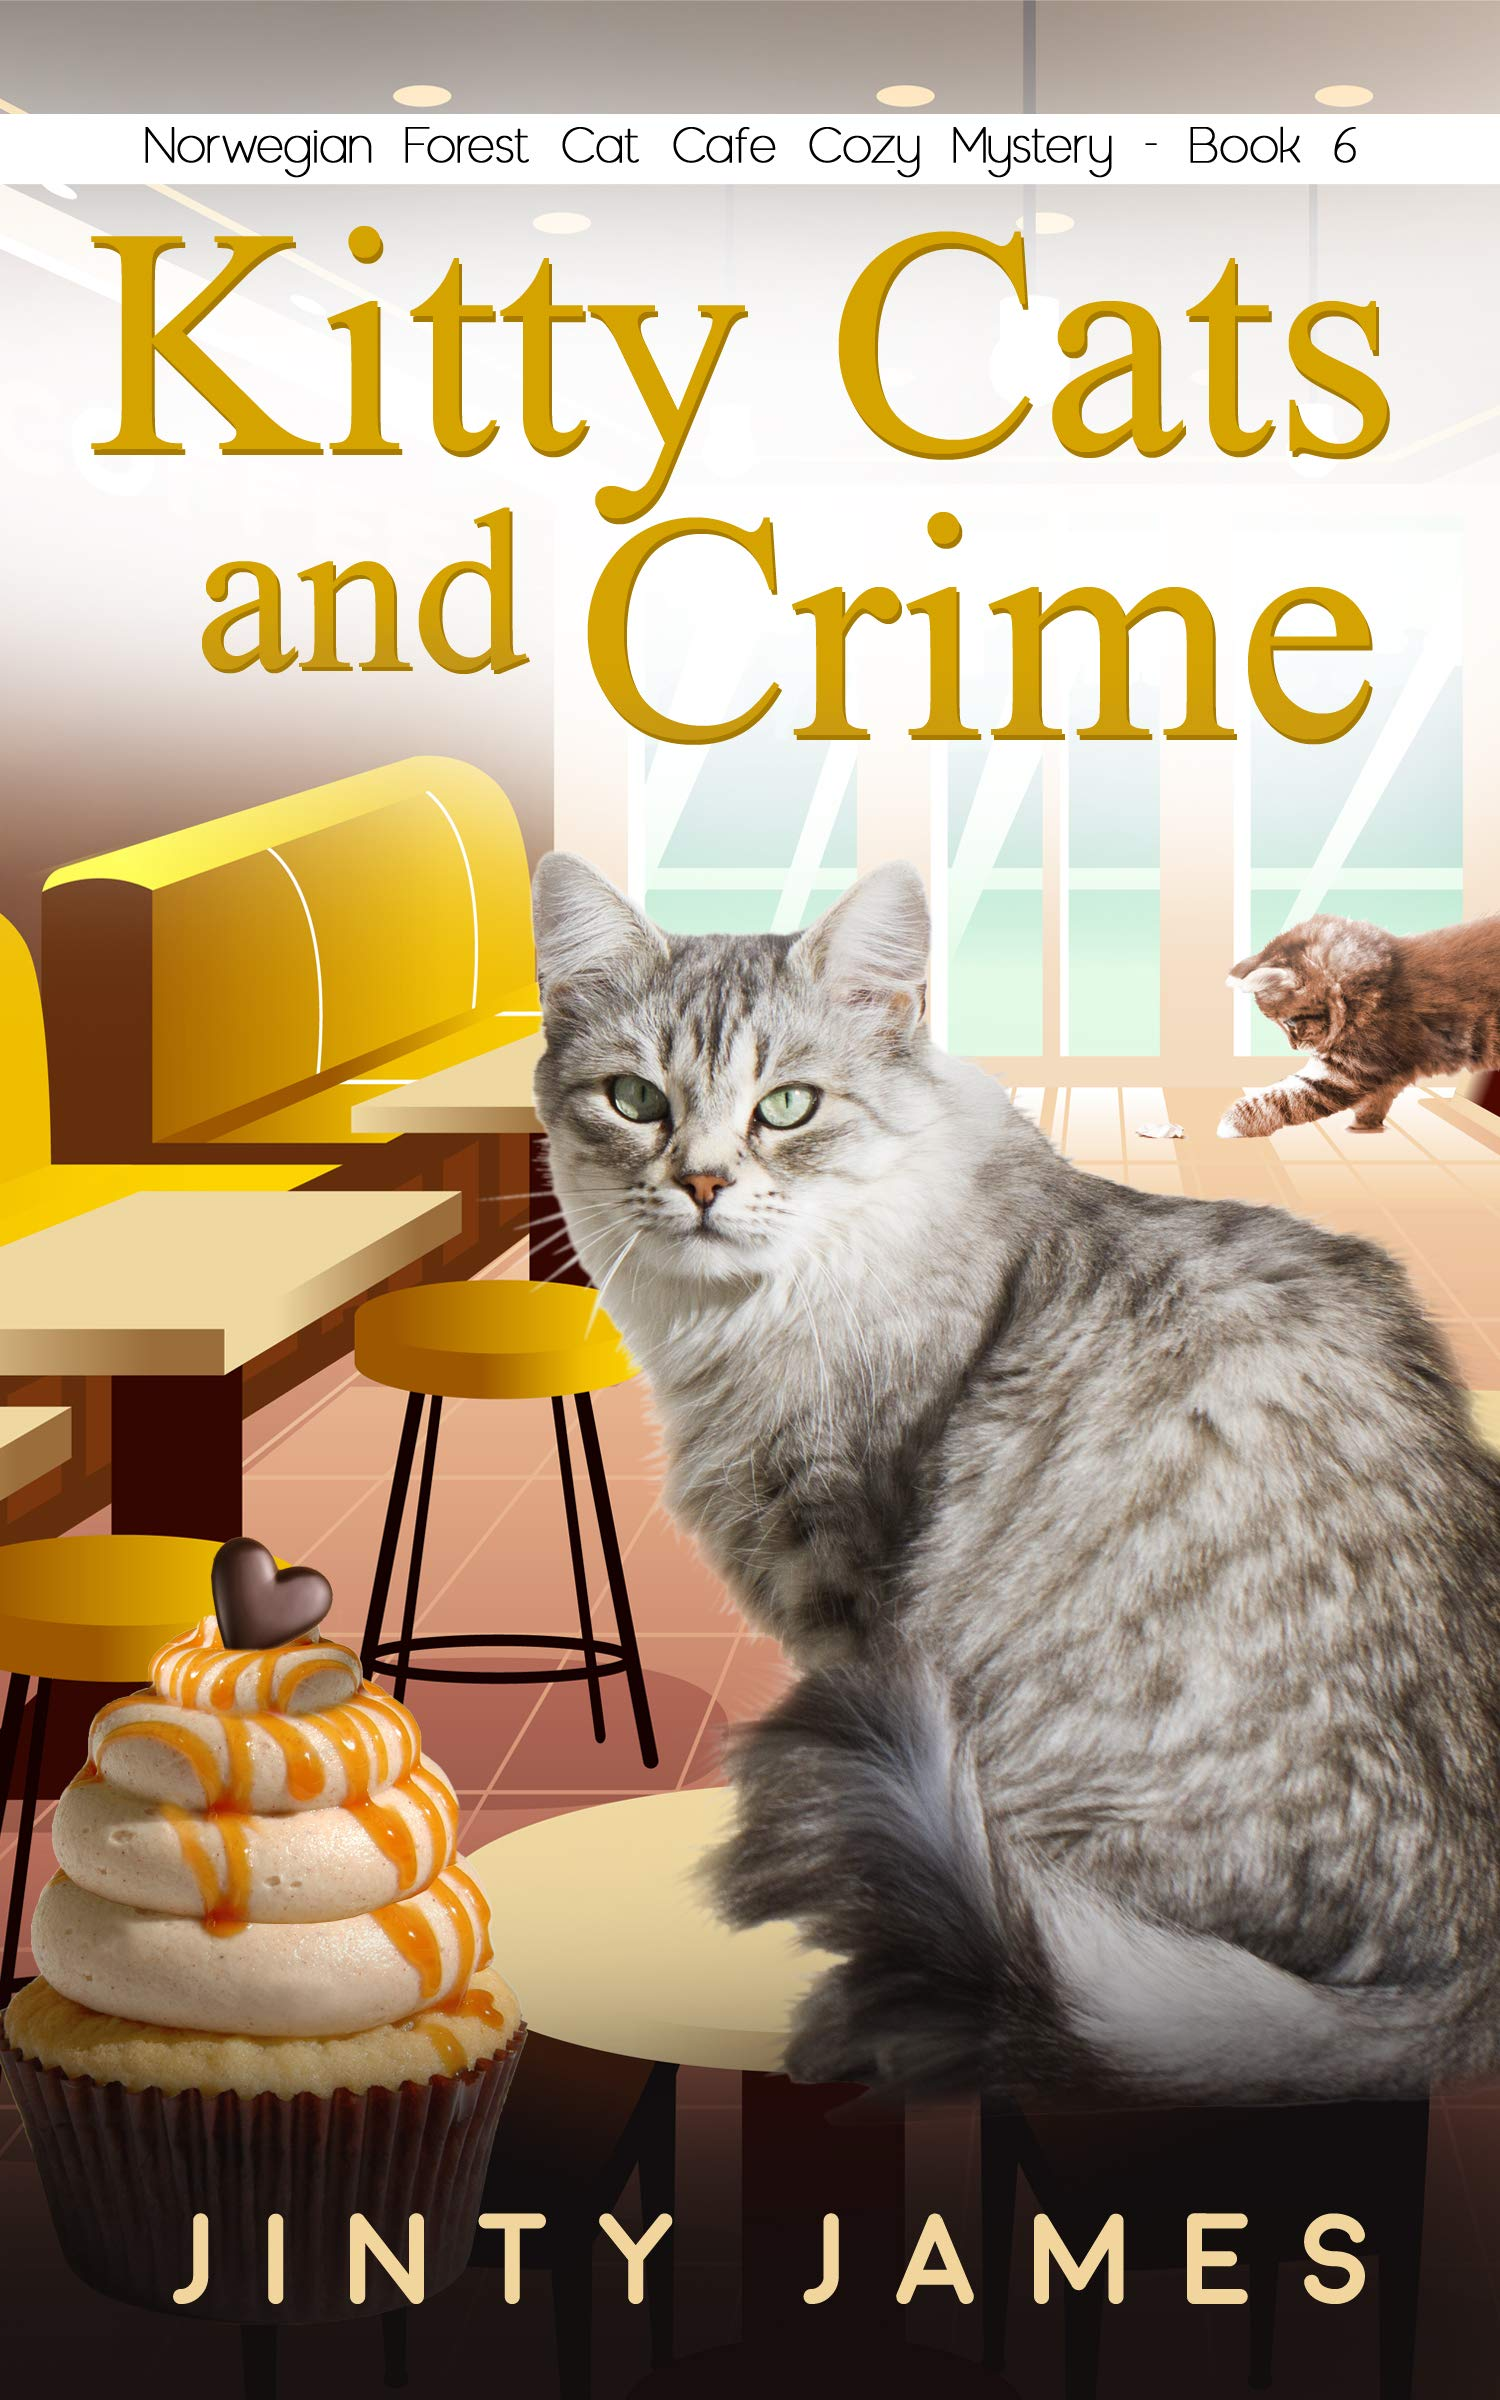 Kitty Cats and Crime: A Norwegian Forest Cat Café Cozy Mystery – Book 6